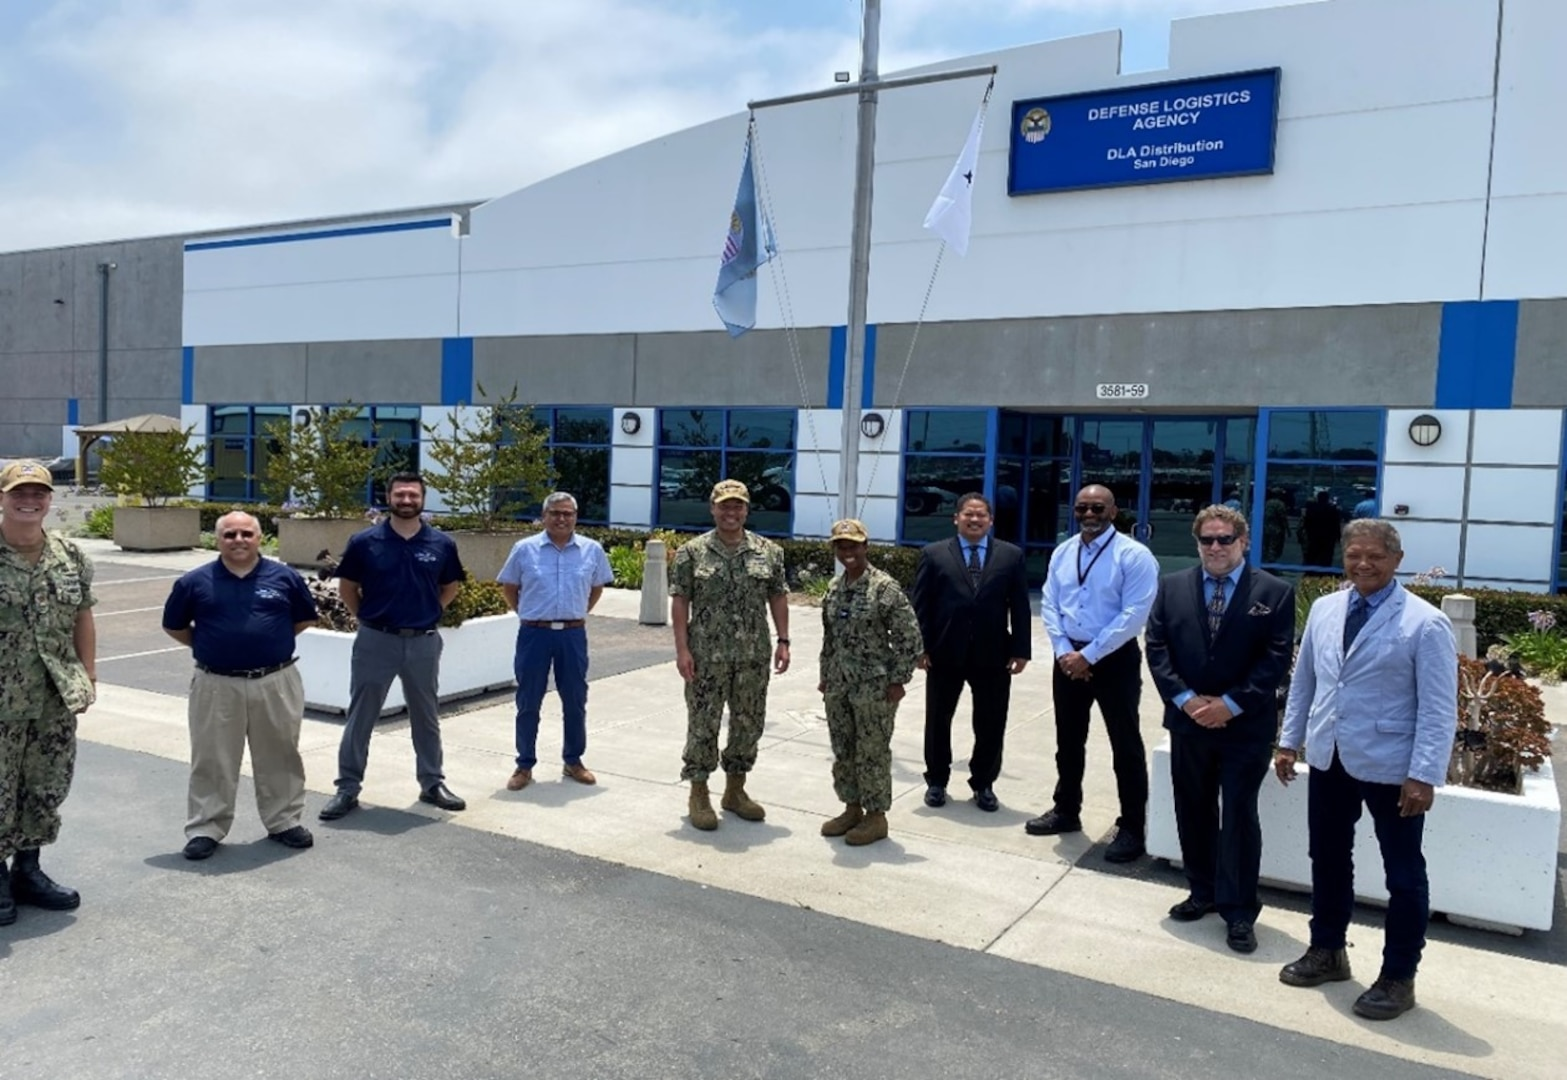 DLA Distribution San Diego hosts Naval Supply Systems Command Weapon Systems Support Commander